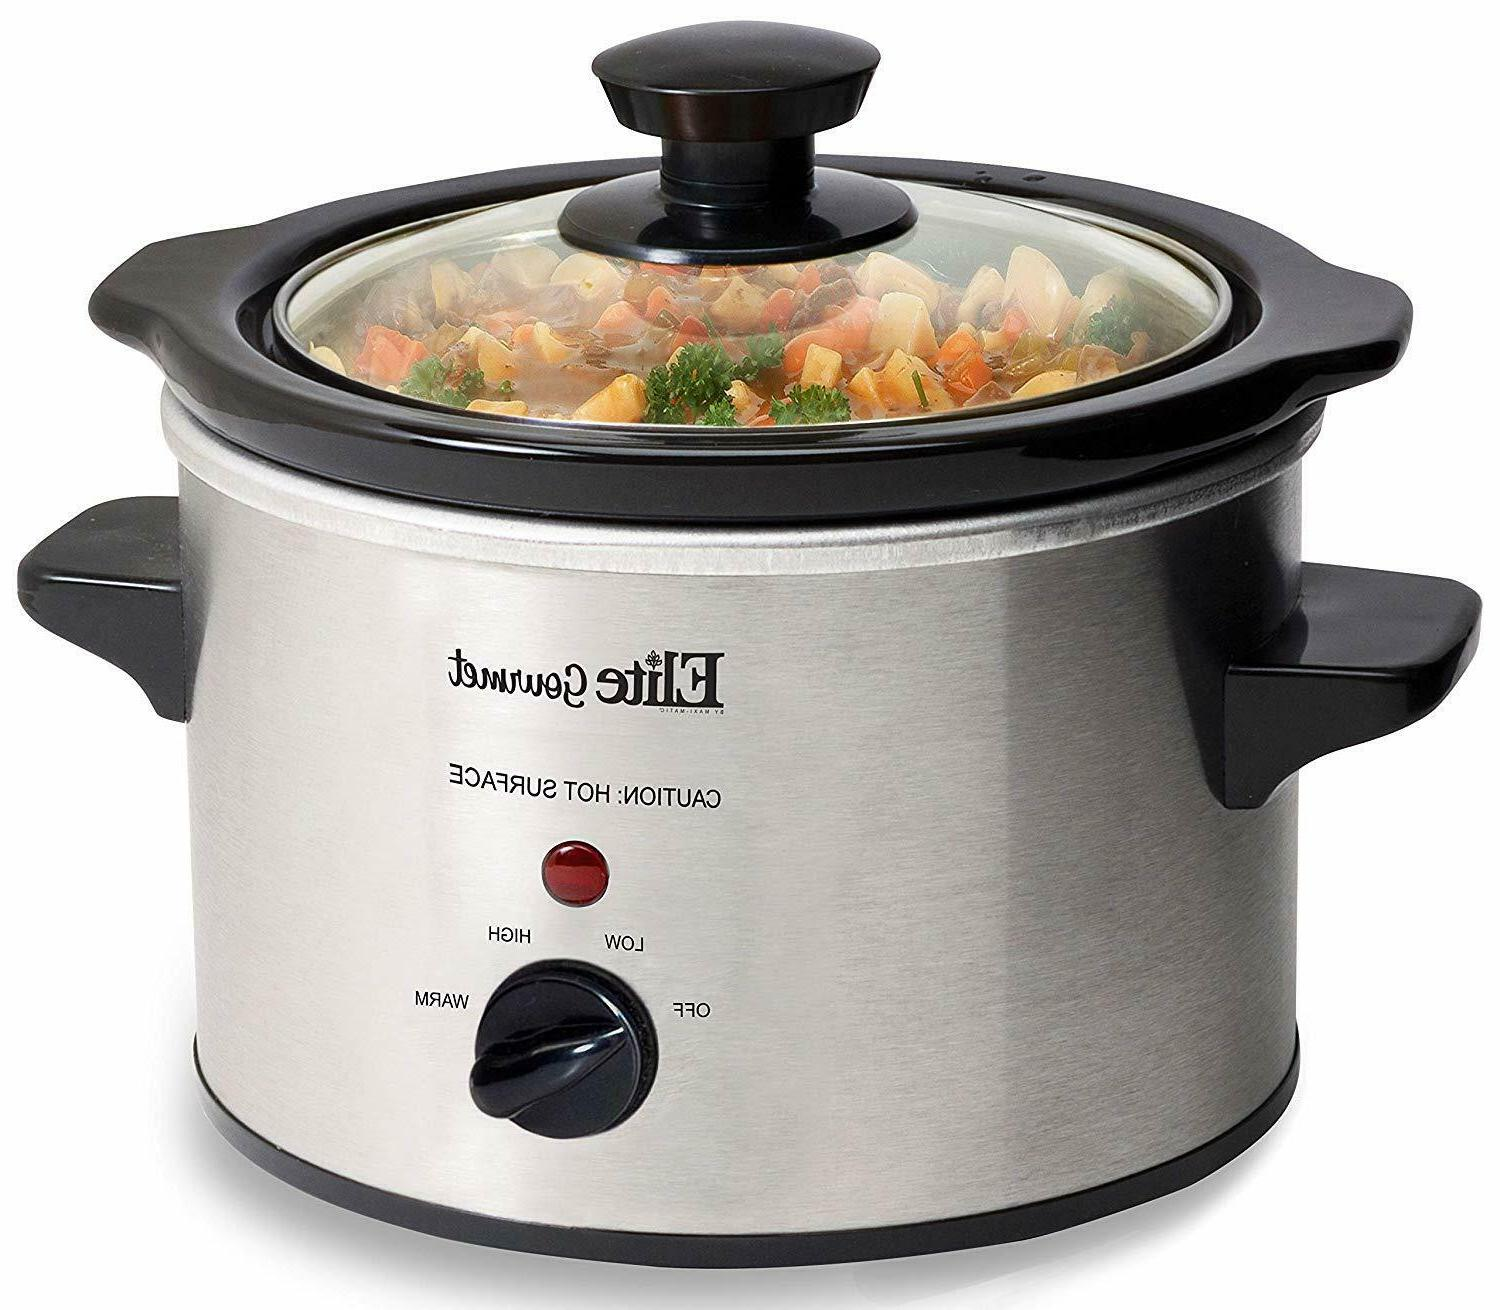 1.5 Quart Electric Slow Cooker Crock Pot Stainless Steel Coo